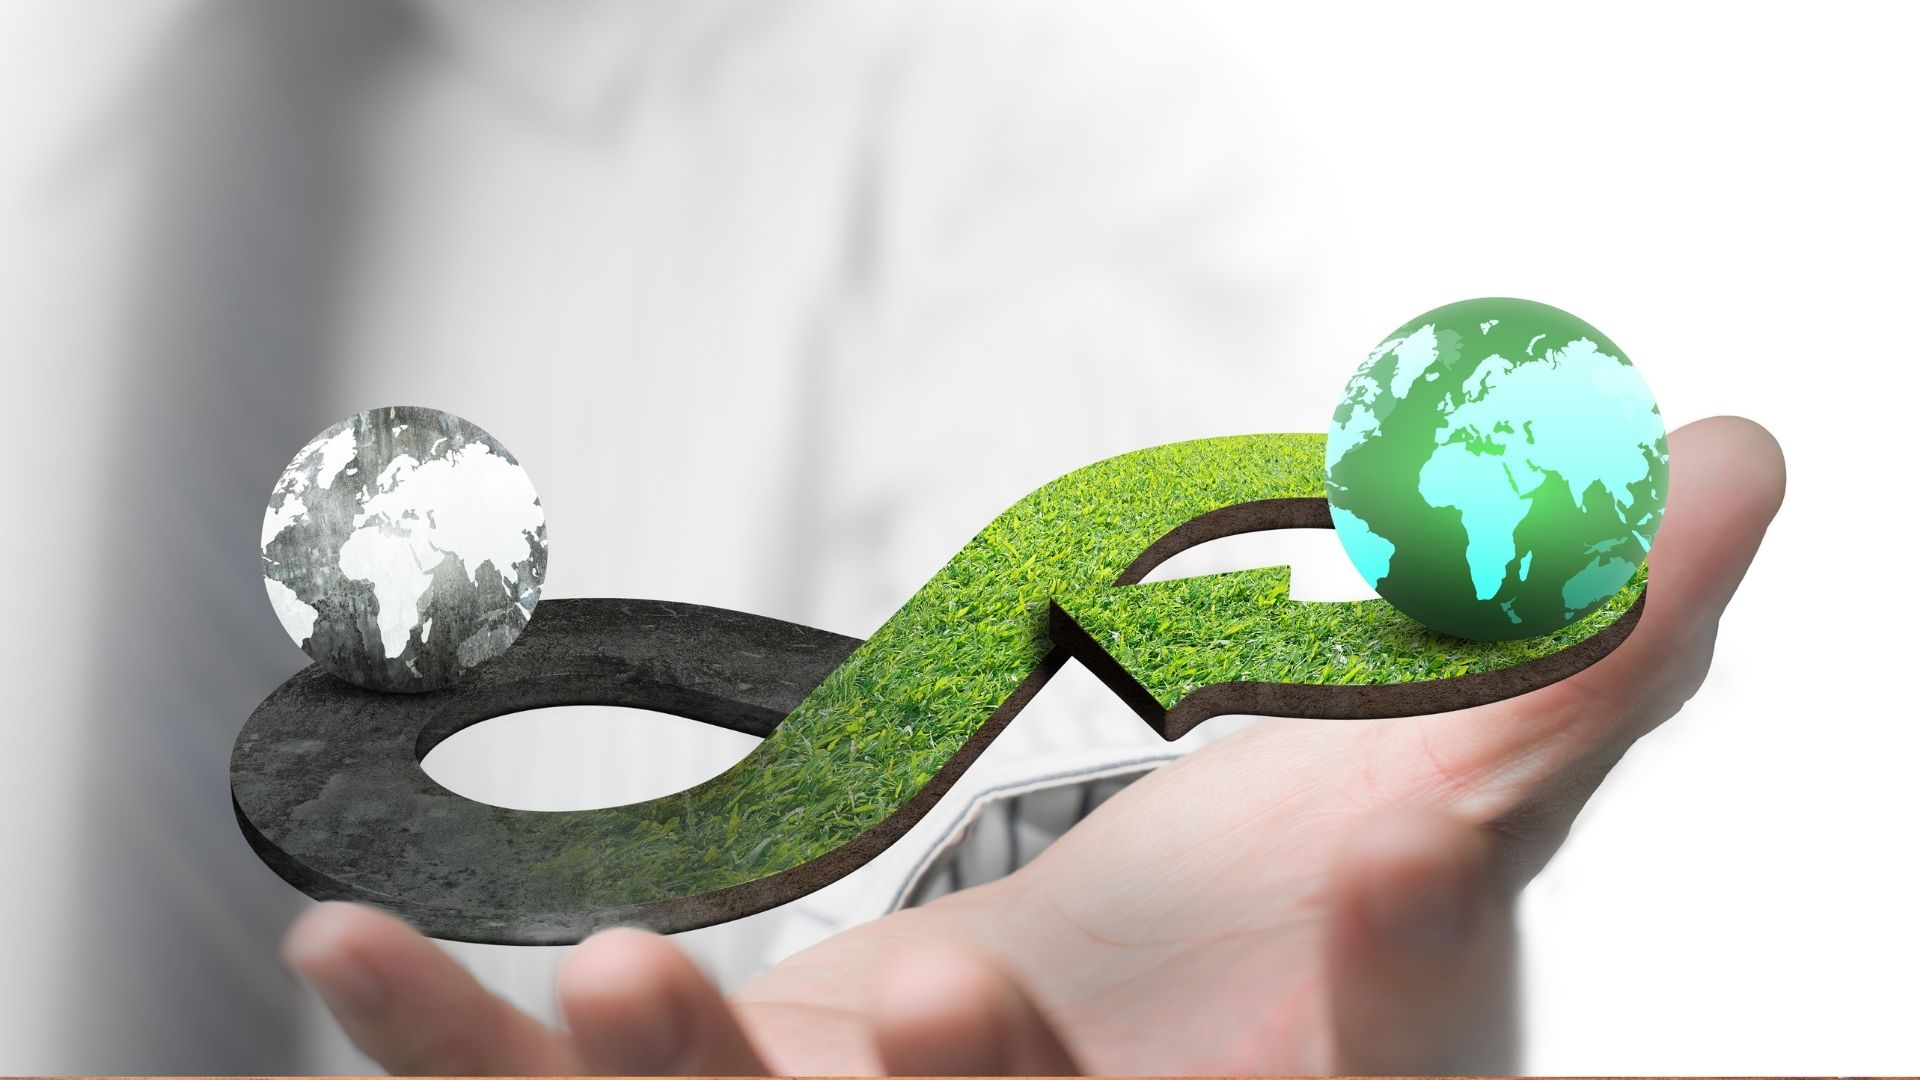 The investment opportunity in a circular economy